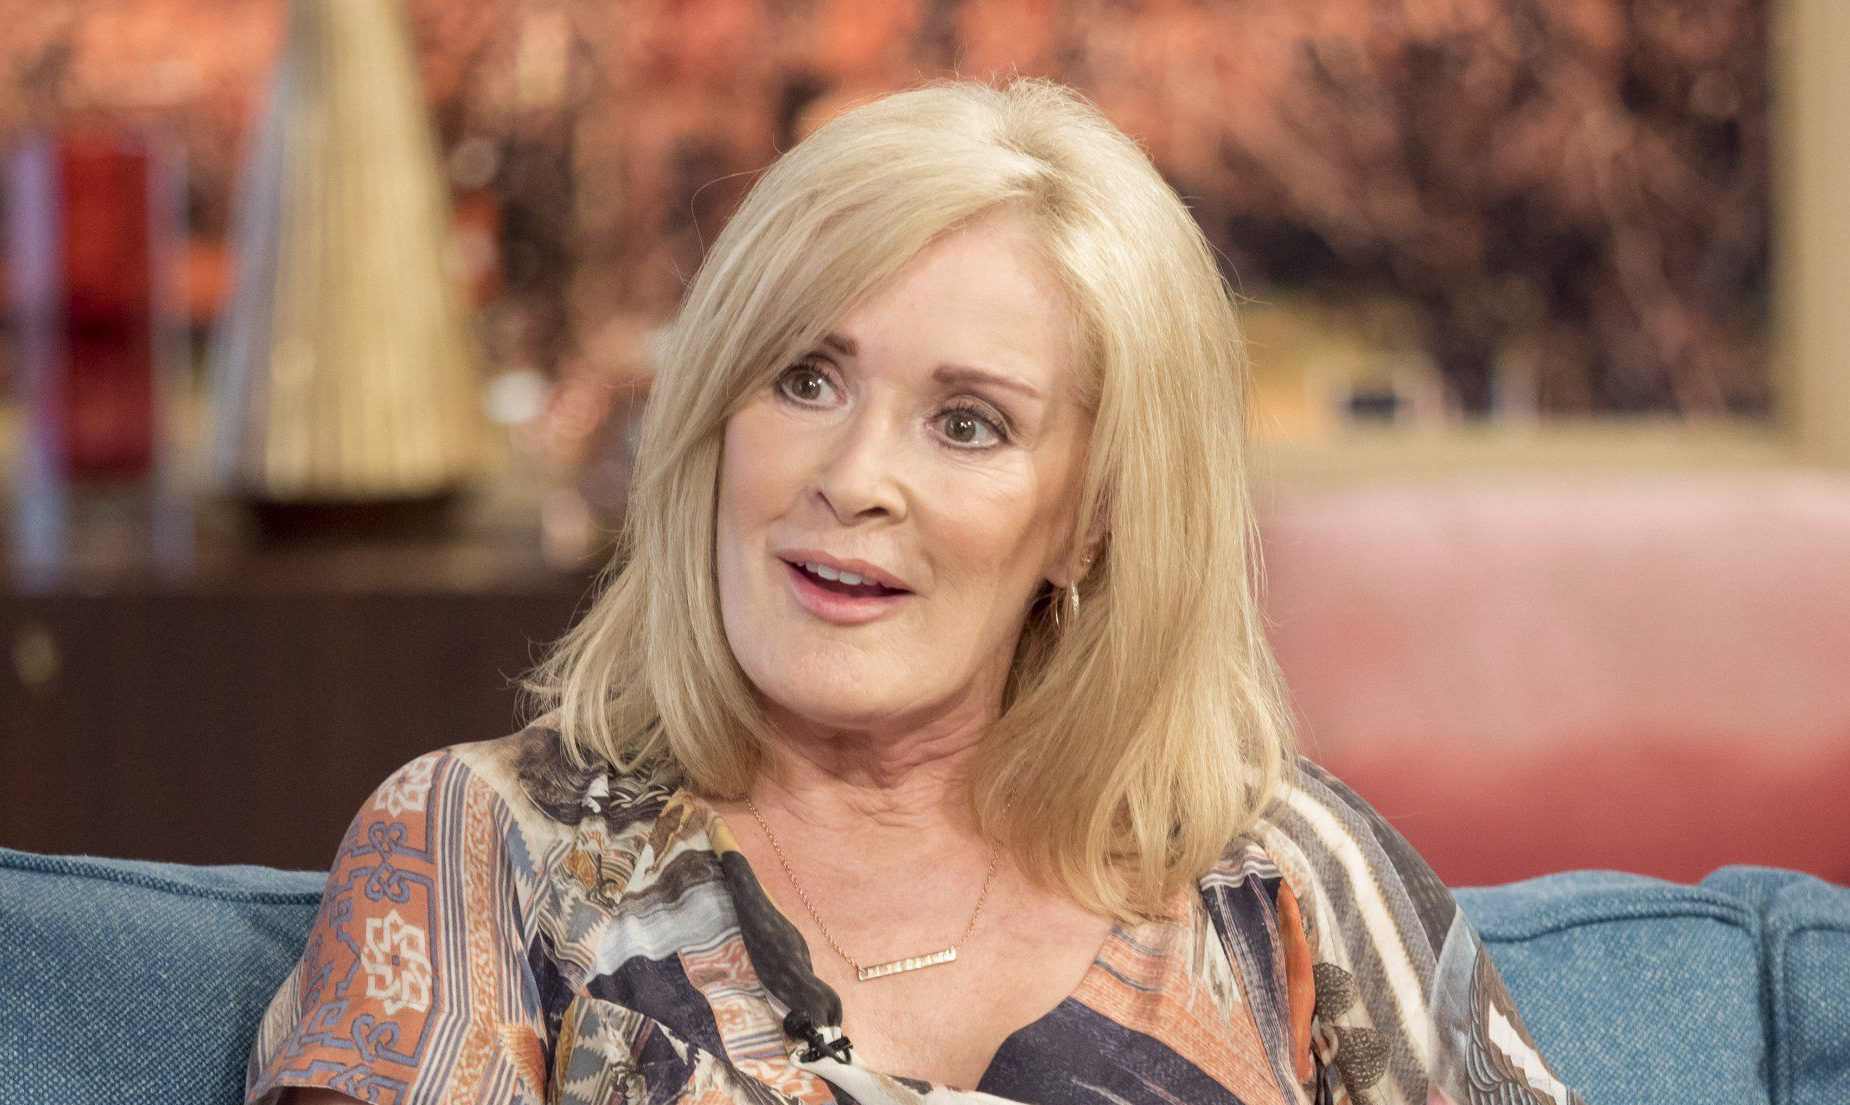 EDITORIAL USE ONLY. NO MERCHANDISING.nMandatory Credit: Photo by Ken McKay/ITV/REX/Shutterstock (5623965bo)nBeverley Callardn'This Morning' TV show, London, Britain - 06 Apr 2016nBeverley Callard is best loved as iconic barmaid Liz McDonald on Coronation Street. But behind the scenes Beverley has, battled severe and often debilitating depression. Most recently Beverley hit the headlines after being signed off sick from the soap when she suffered an emotional breakdown on set. We're please to say she is now on the road to recovery.n